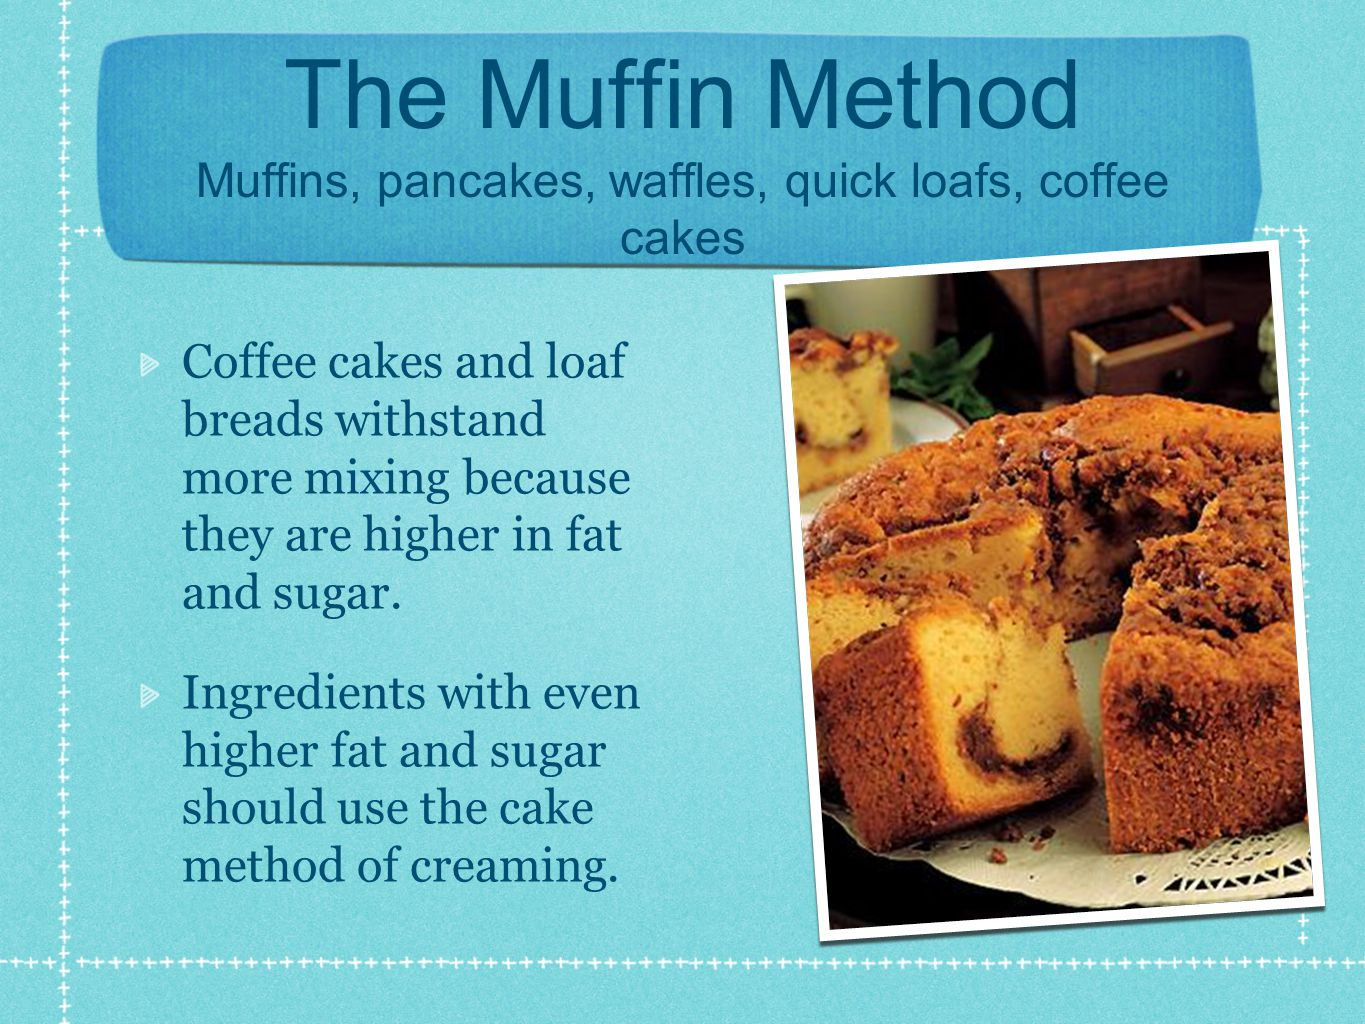 The Muffin Method Muffins, pancakes, waffles, quick loafs, coffee cakes Coffee cakes and loaf breads withstand more mixing because they are higher in fat and sugar.